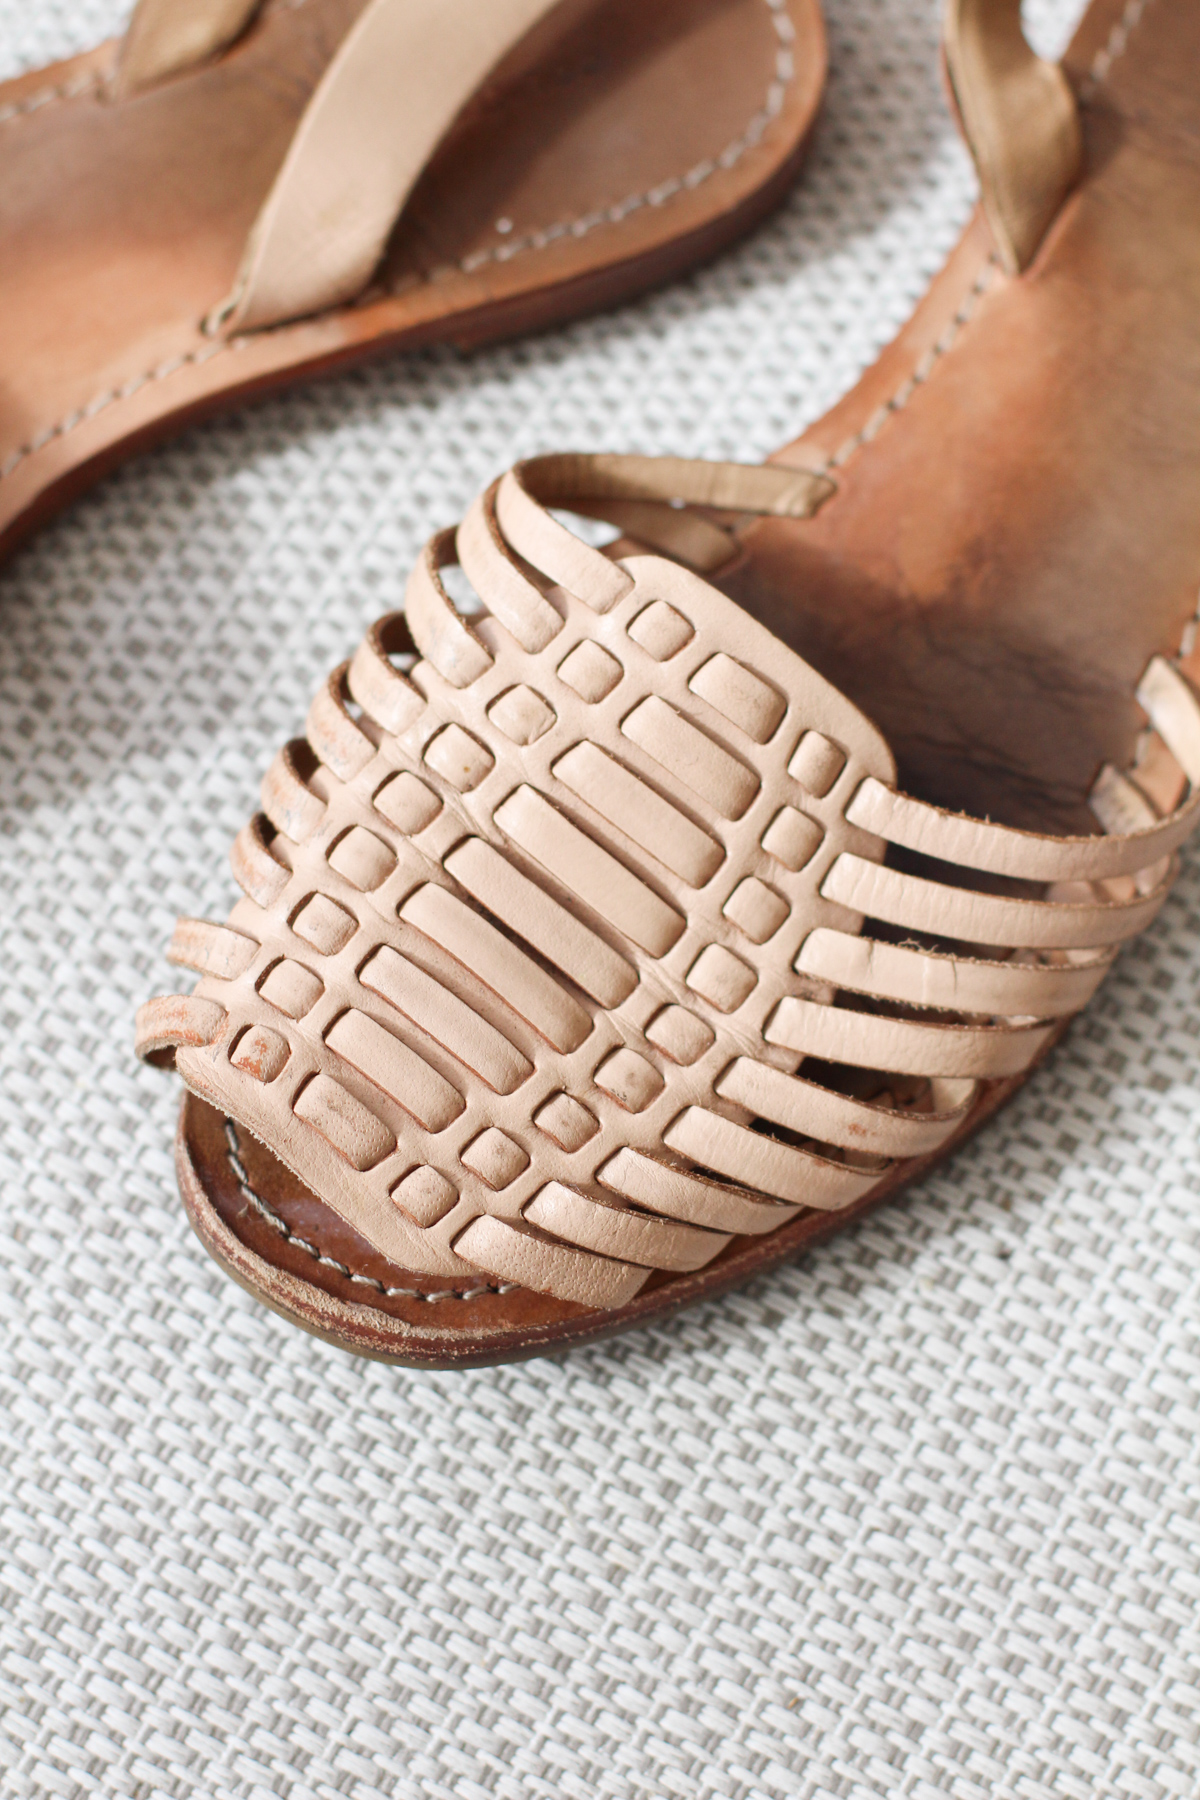 Replicating my favourite sandals: the details of the upper